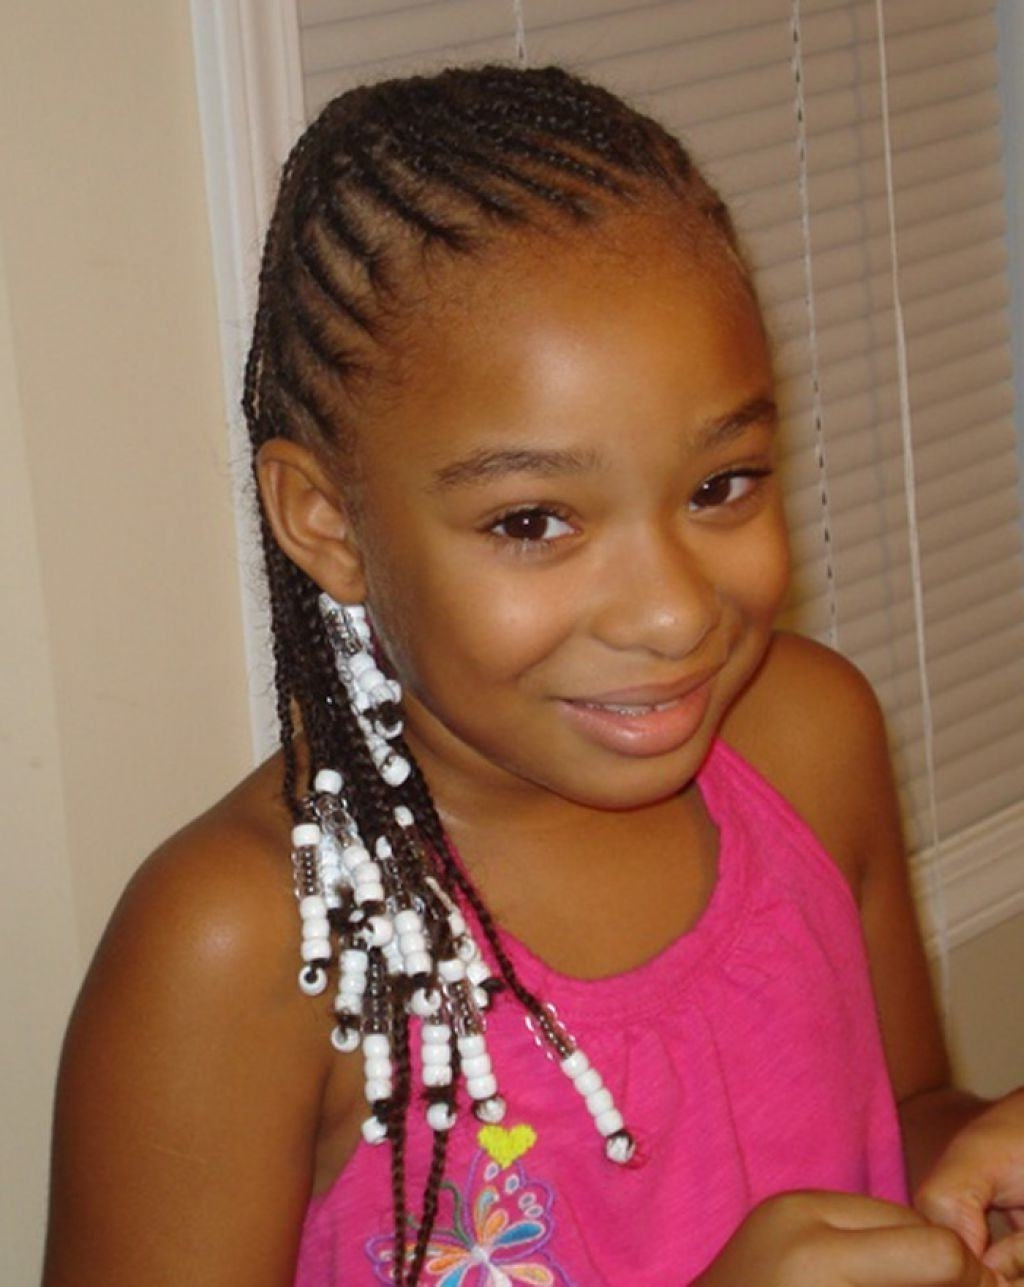 45+ Fun & Funky Braided Hairstyles For Kids – Hairstylecamp In Well Known Braided Hairstyles Without Weave (View 10 of 15)